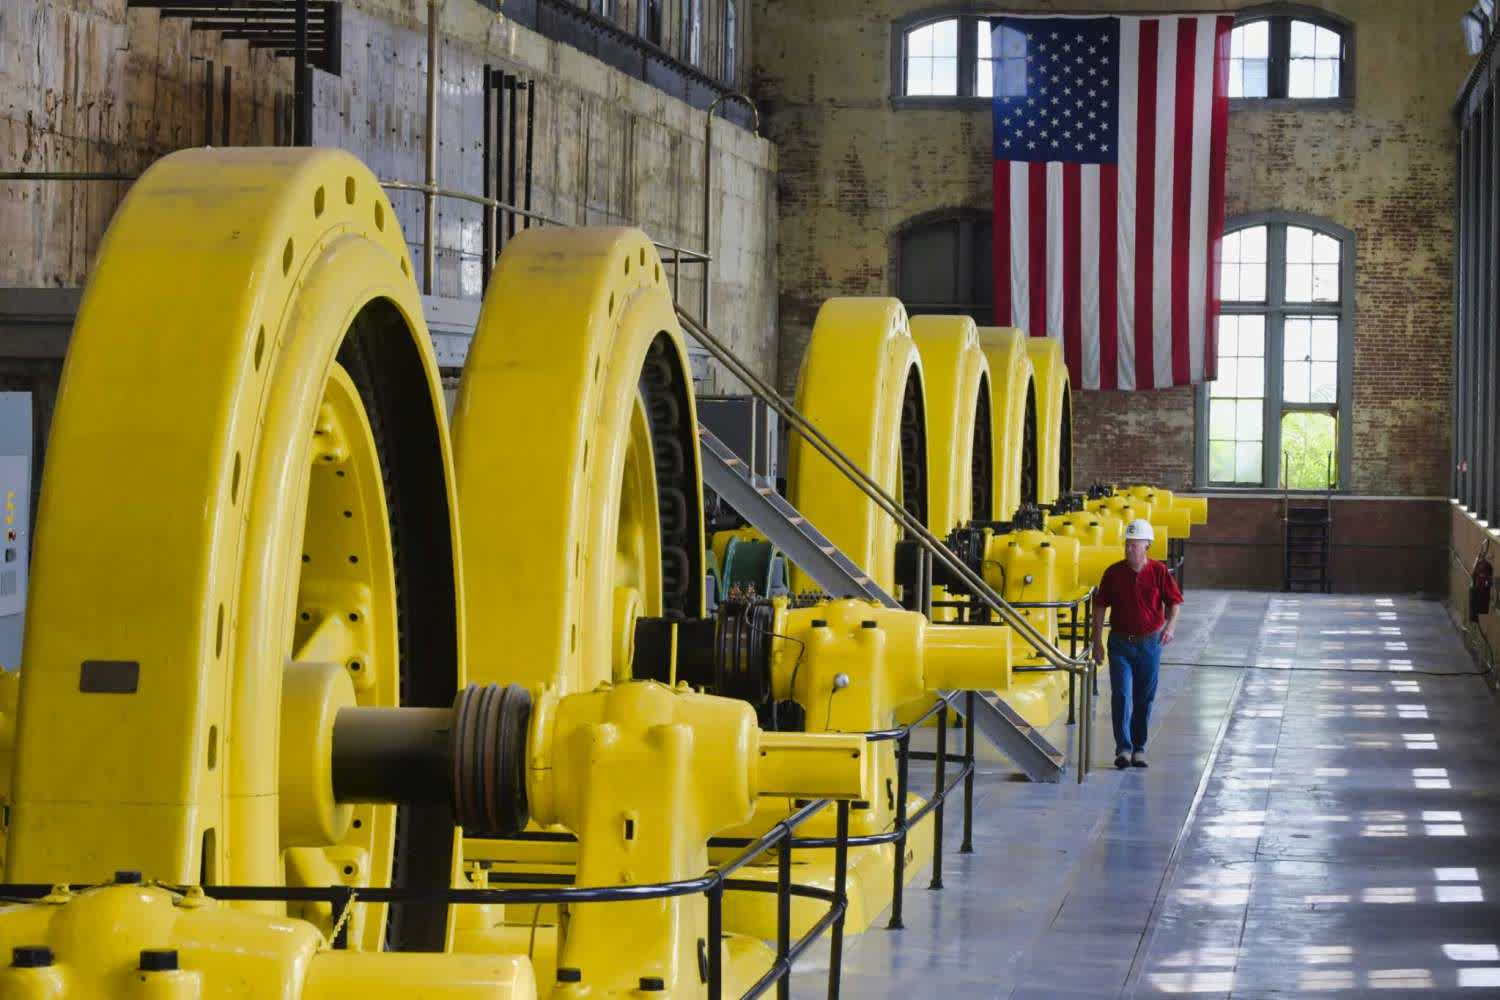 A 124-year old hydroelectric plant is using its power to mine Bitcoin